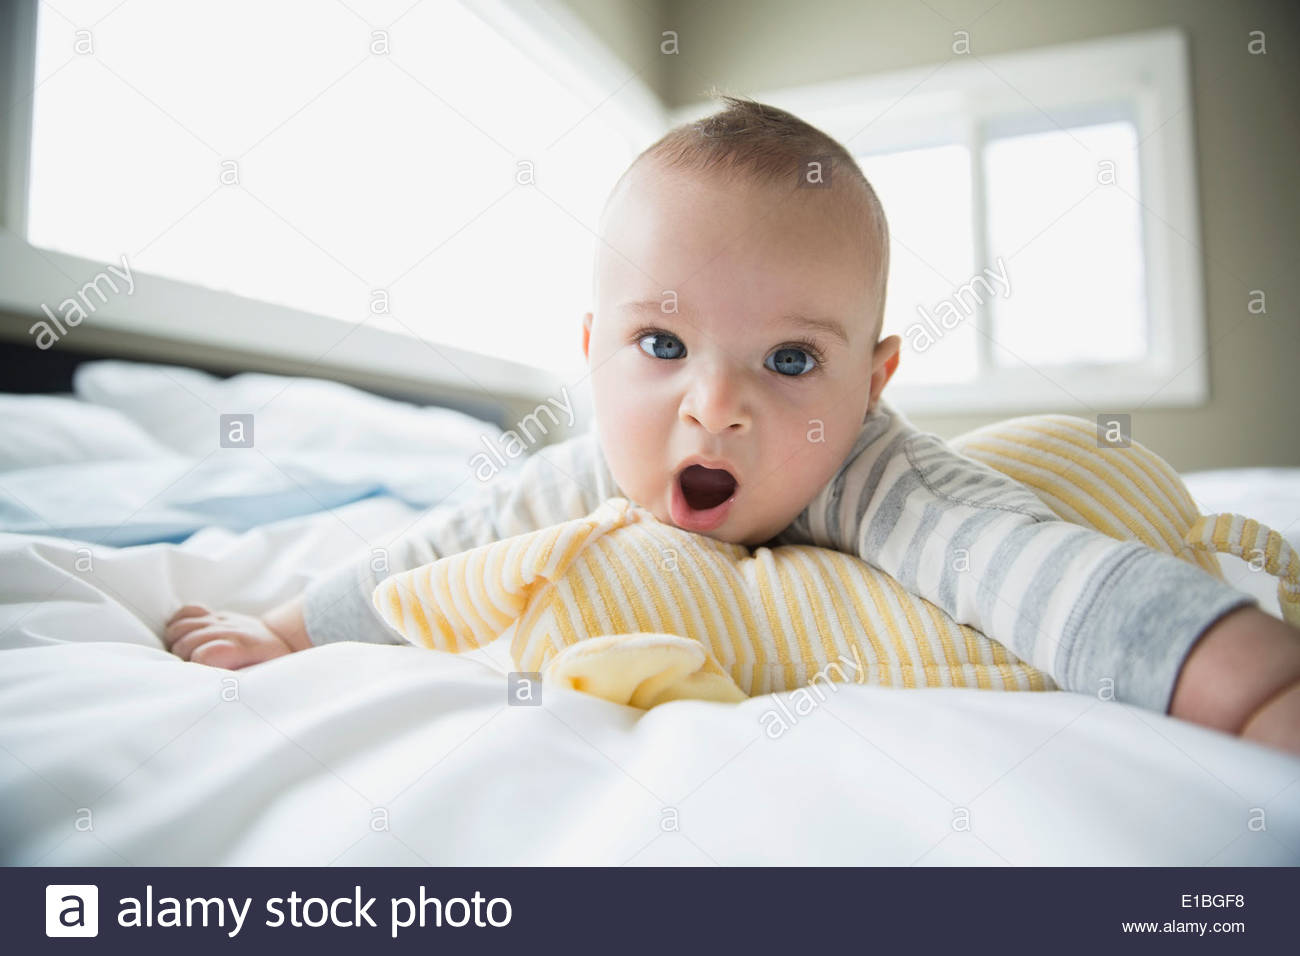 Portrait of yawning baby on bed - Stock Image